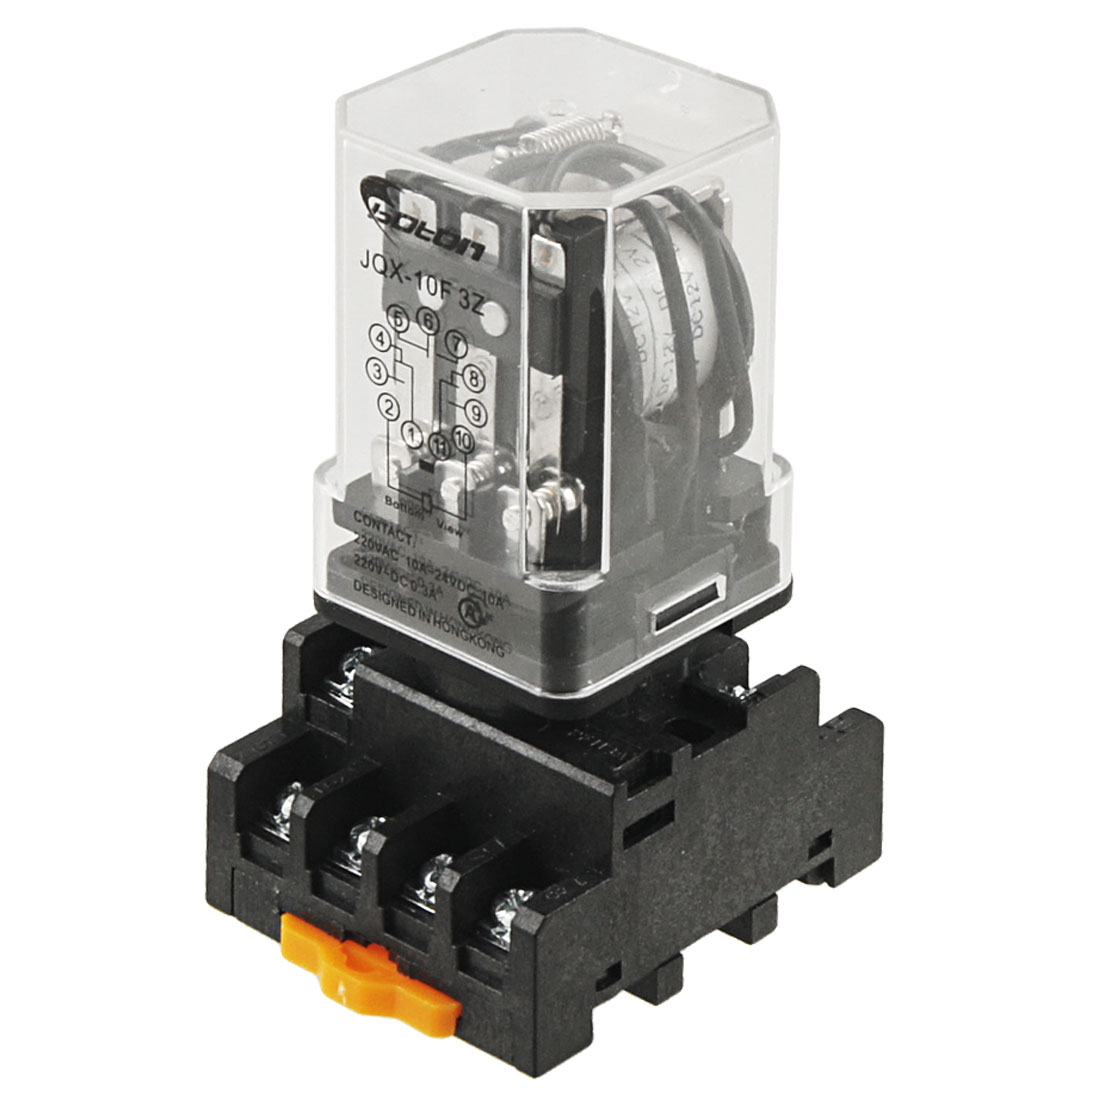 JQX-10F-3Z DC 12V Coil Voltage 3PDT Power Relay 10A w Socket